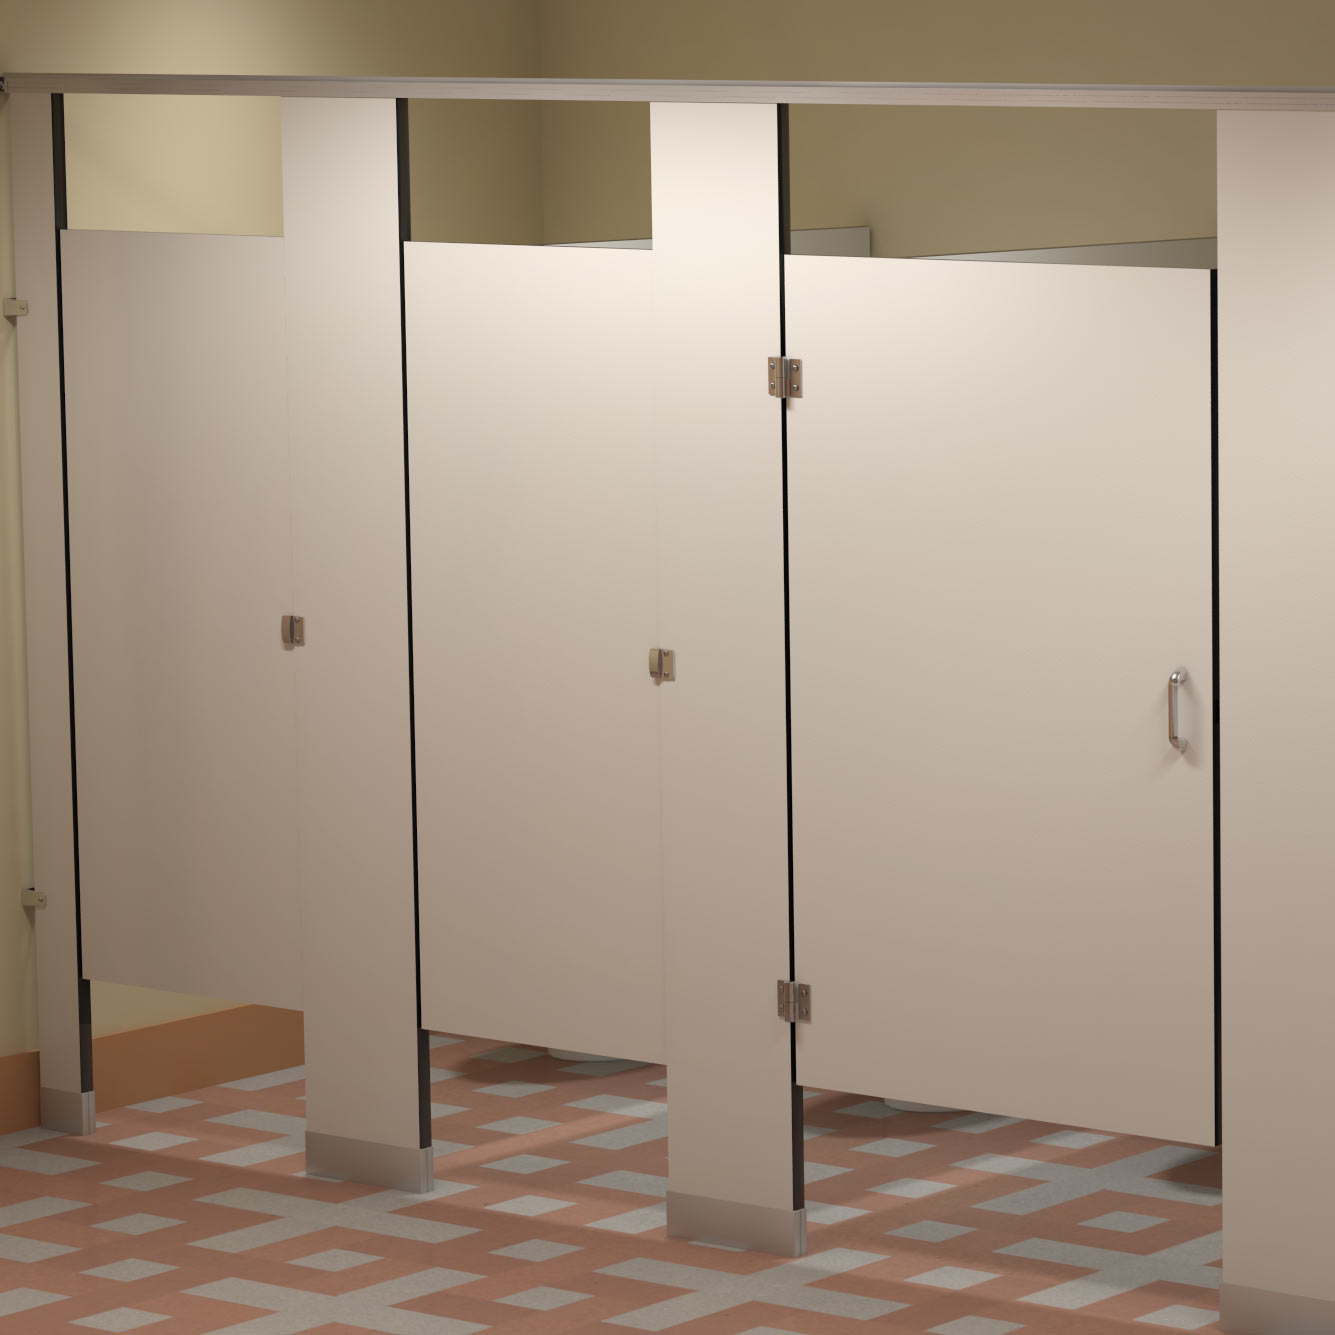 Bathroom Partition Glass Model solid phenolic core partitions - bradley corporation